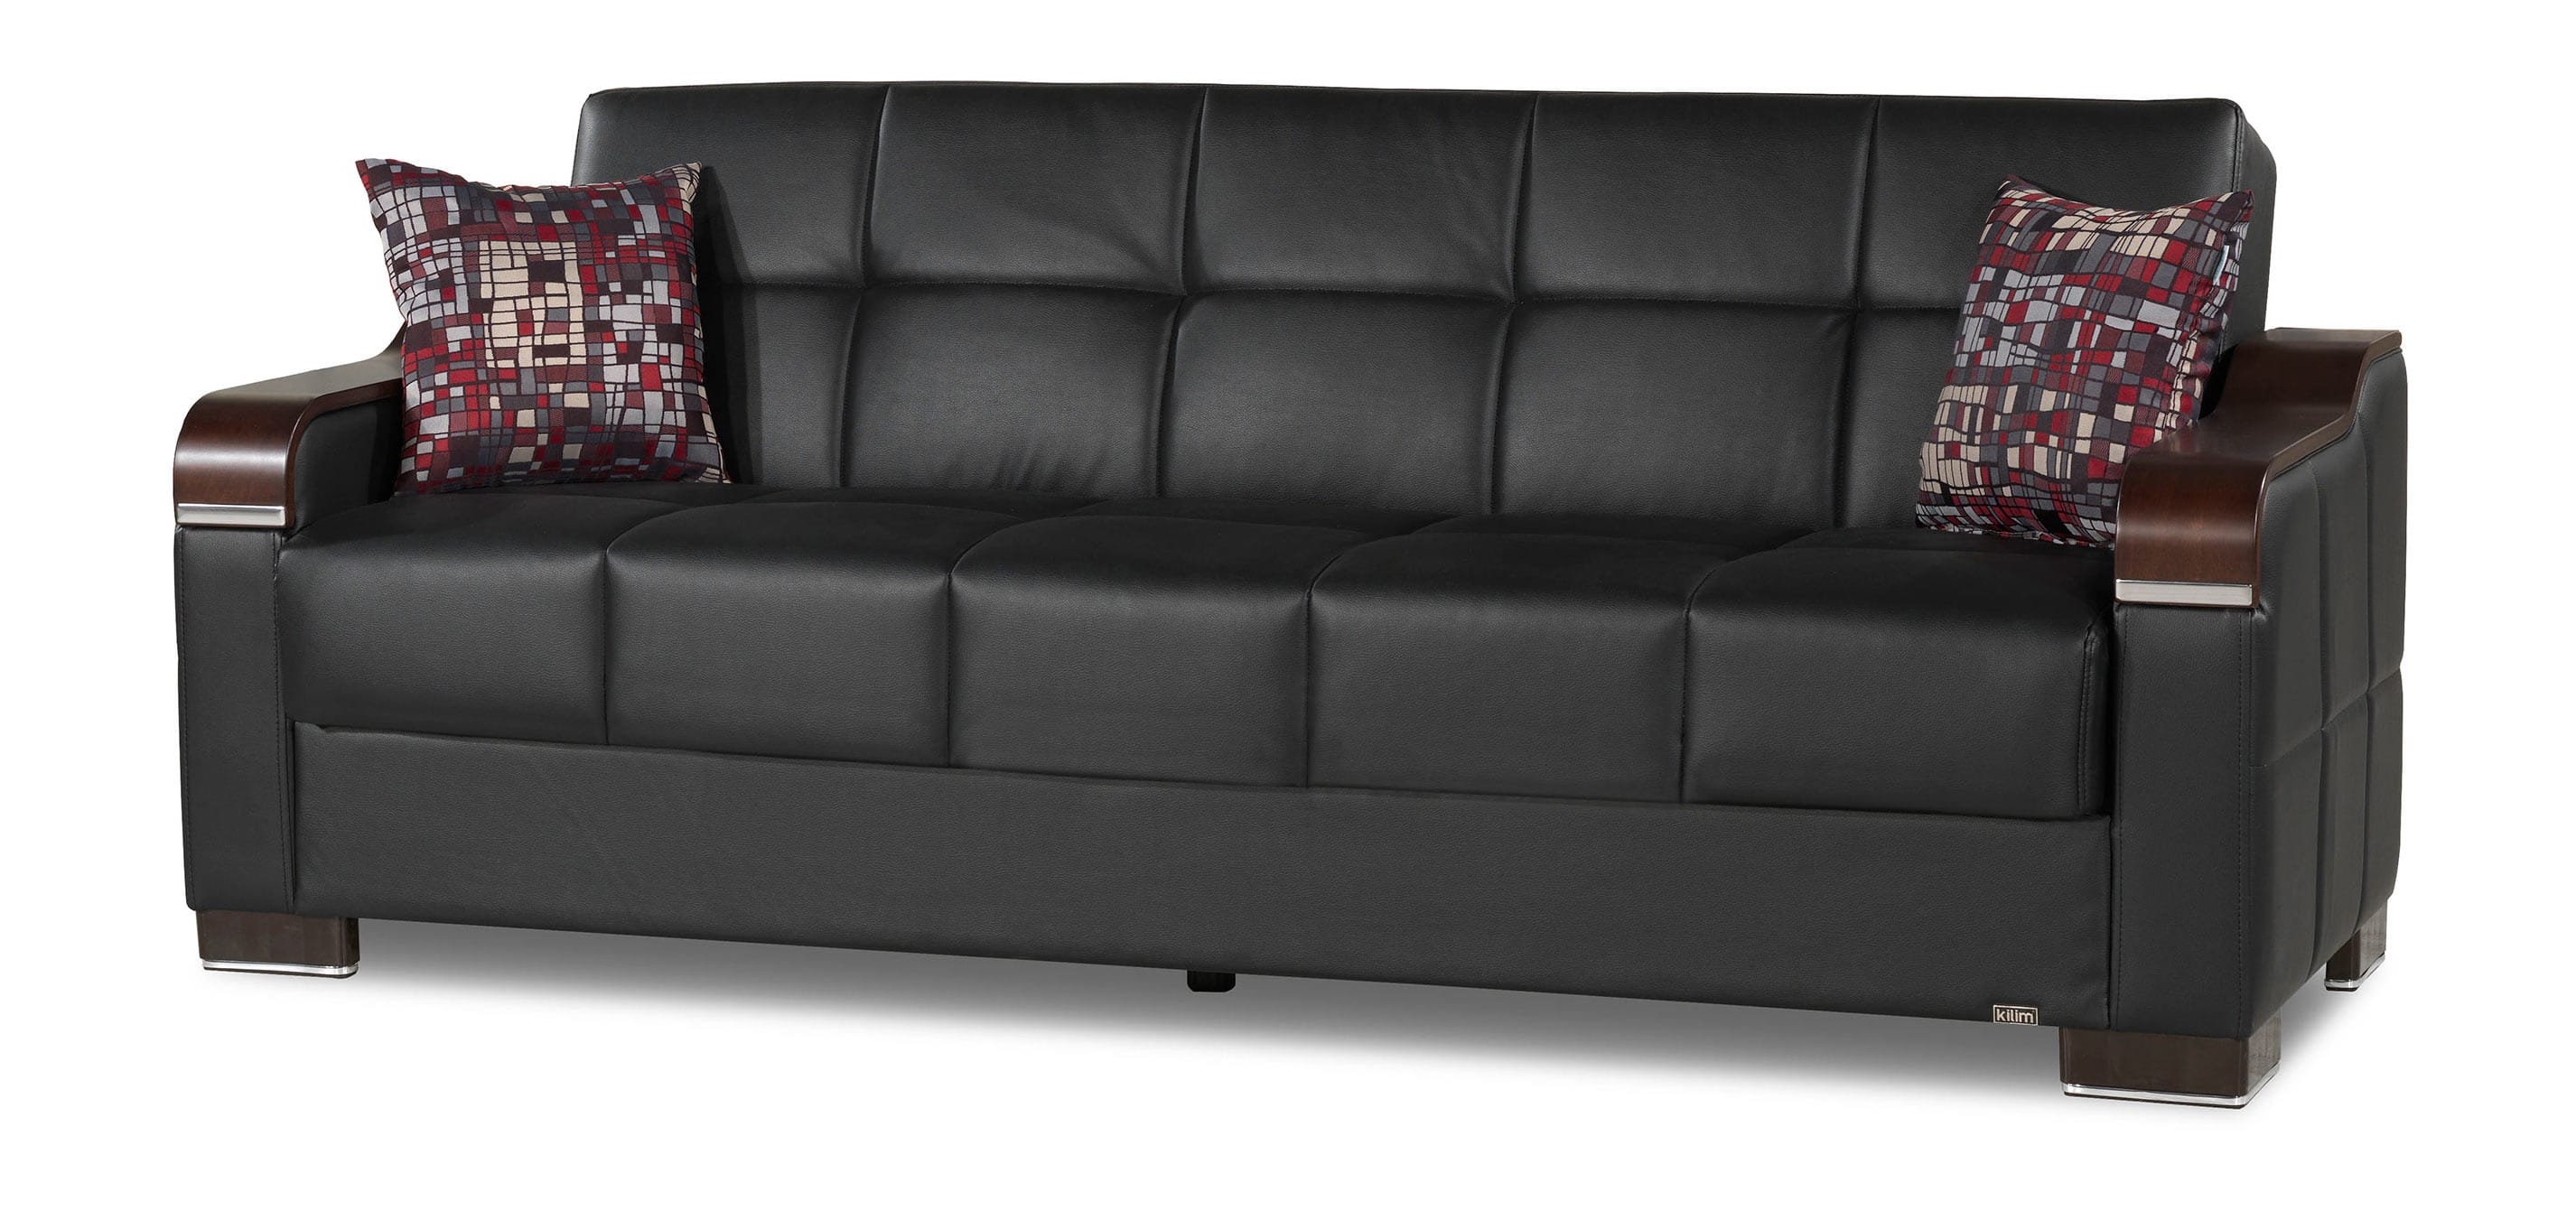 Uptown Black Leatherette Convertible Sofa By Casamode